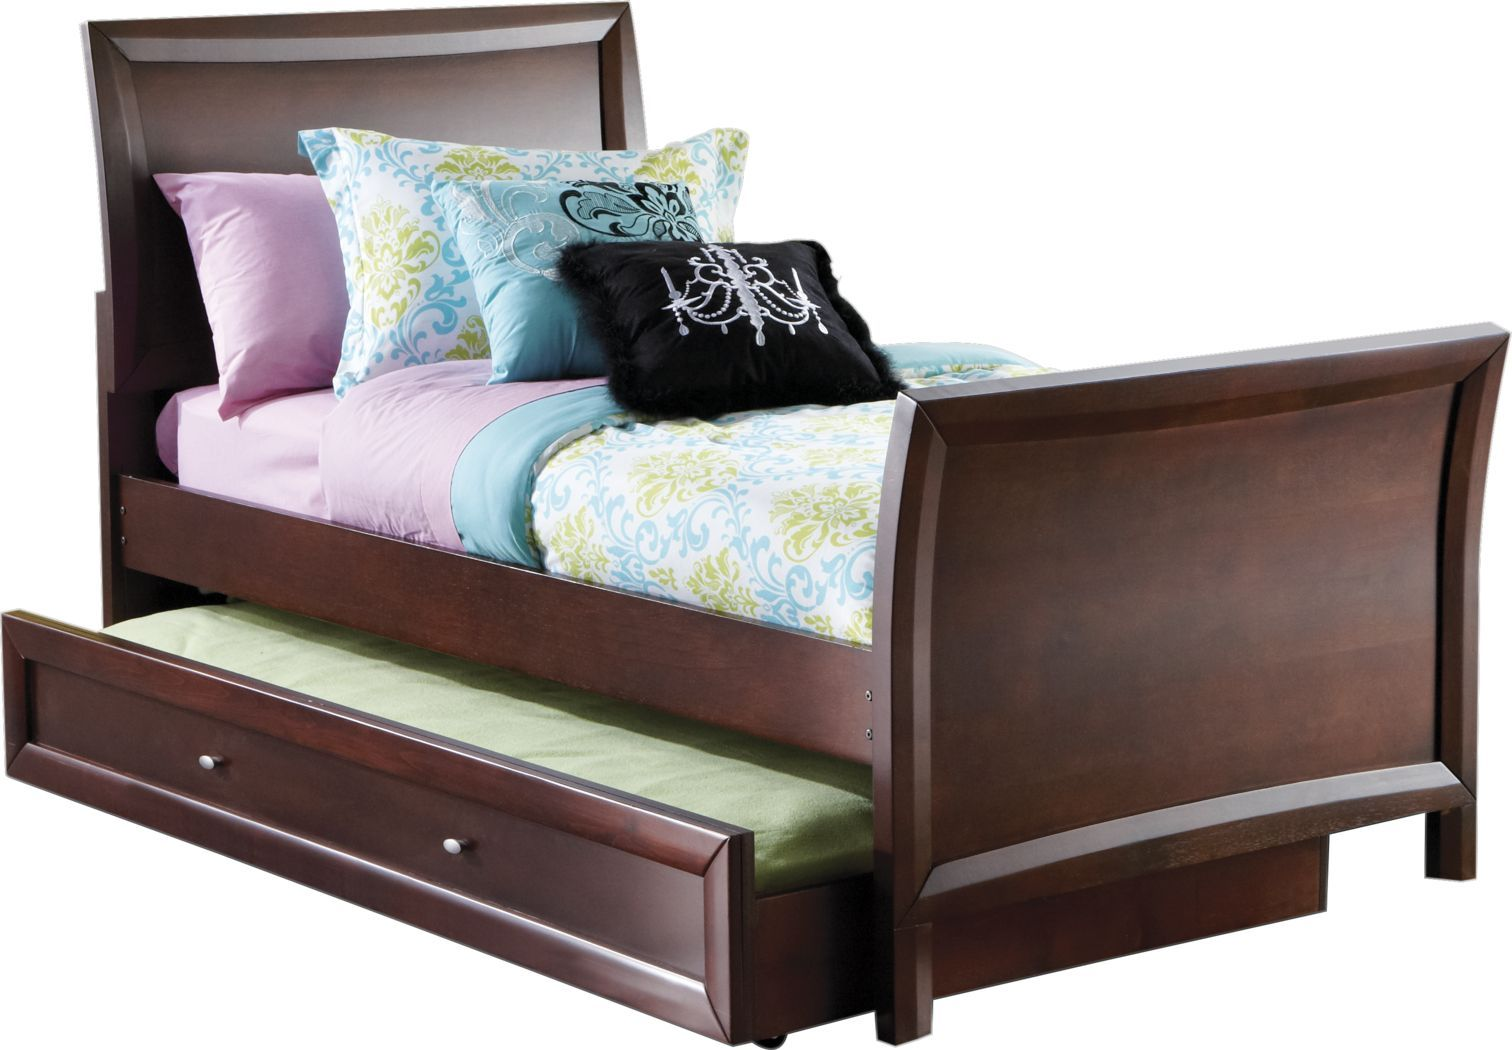 Kids Ivy League Cherry 4 Pc Twin Sleigh Bed W Trundle Kid Beds